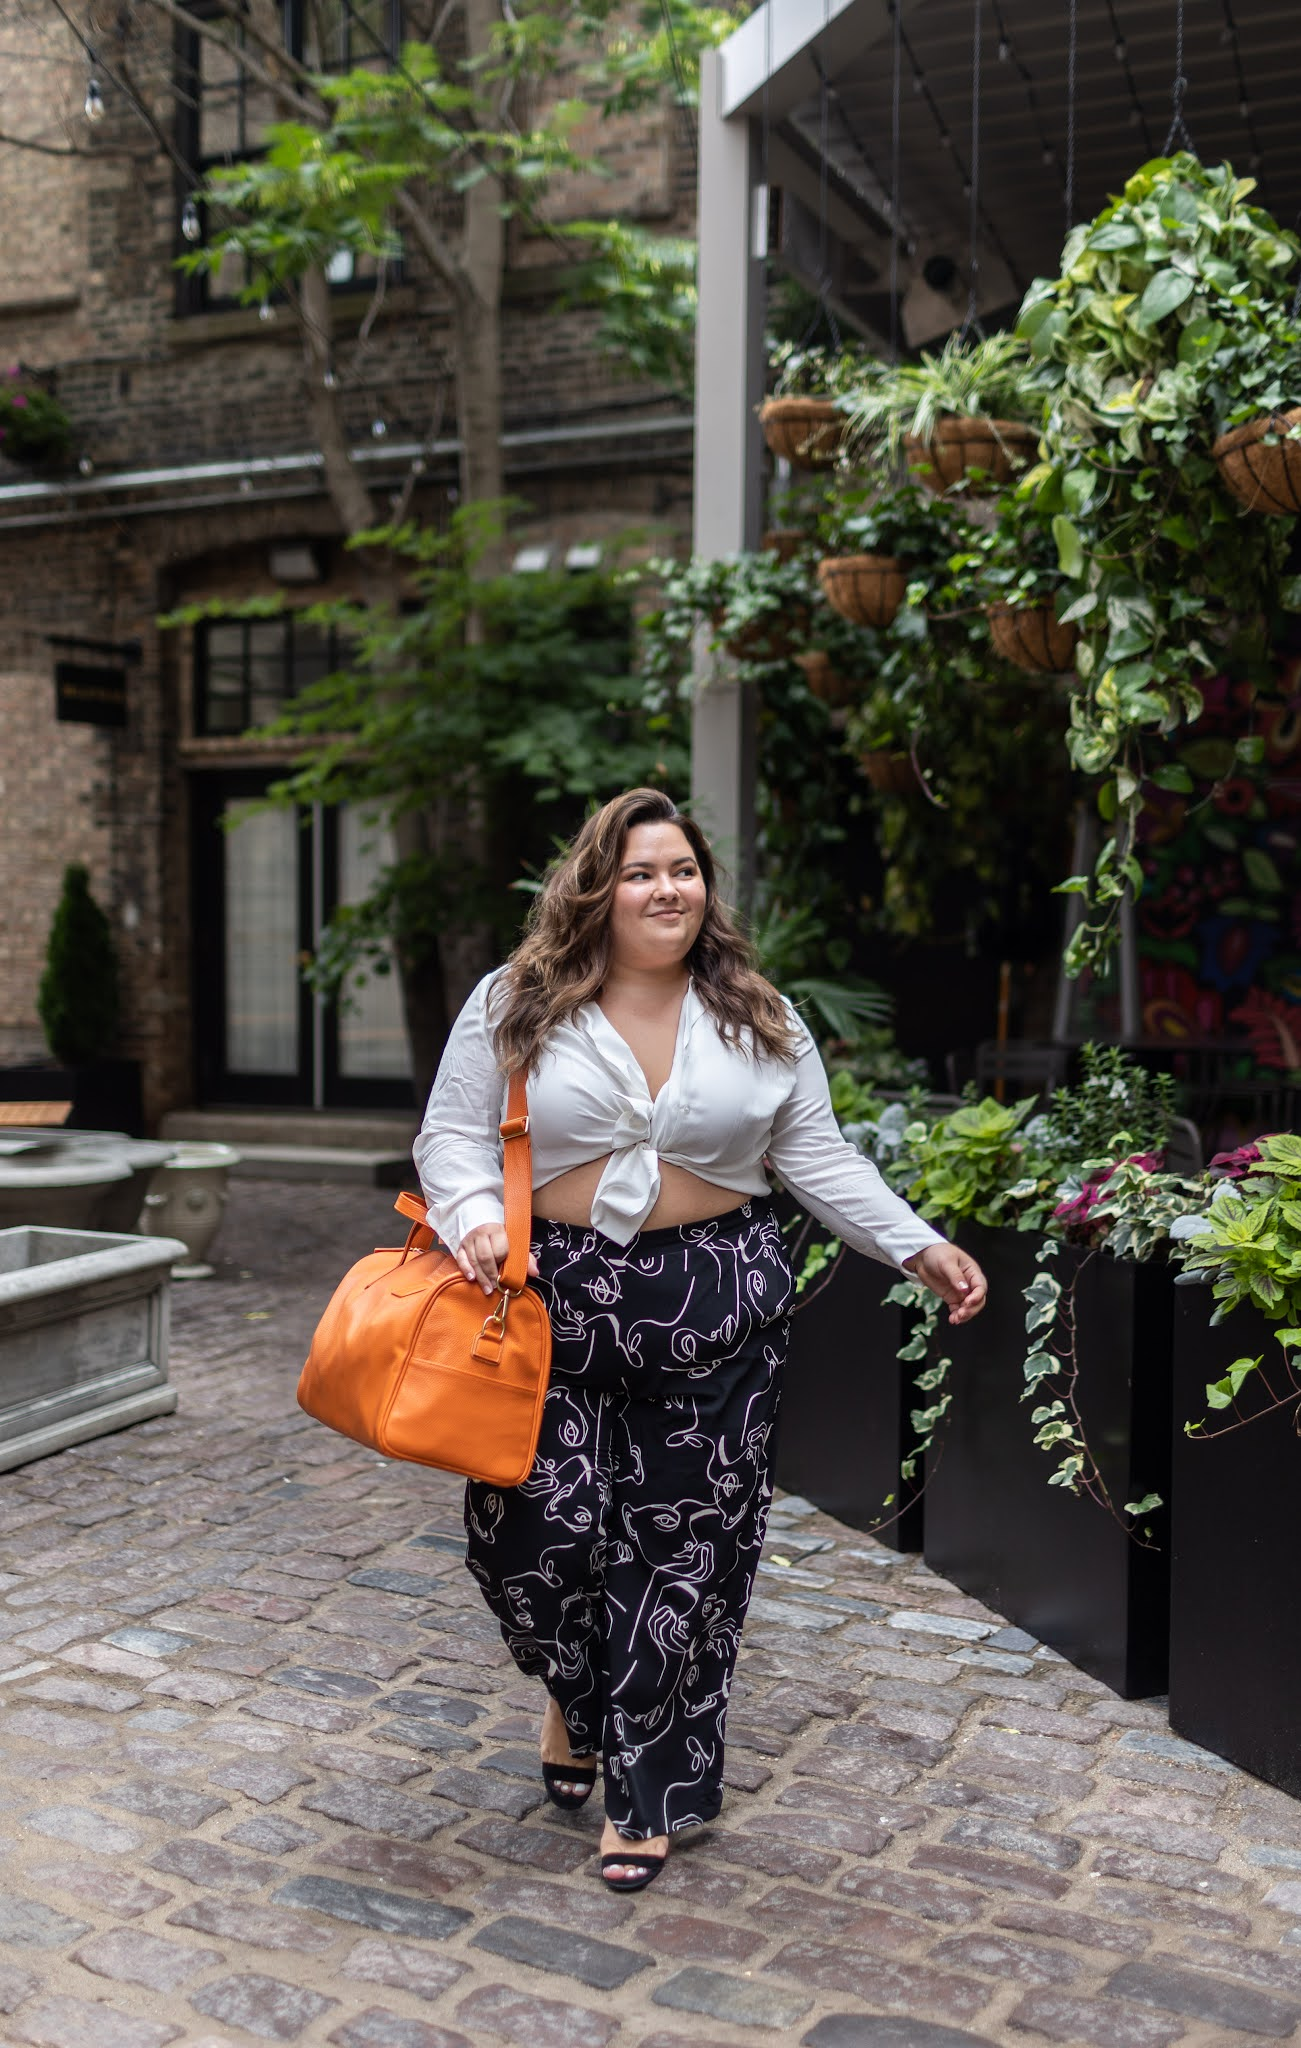 Natalie in the City shares what petite plus size means, how to dress a petite plus size body, and where to shop for petite plus clothing.